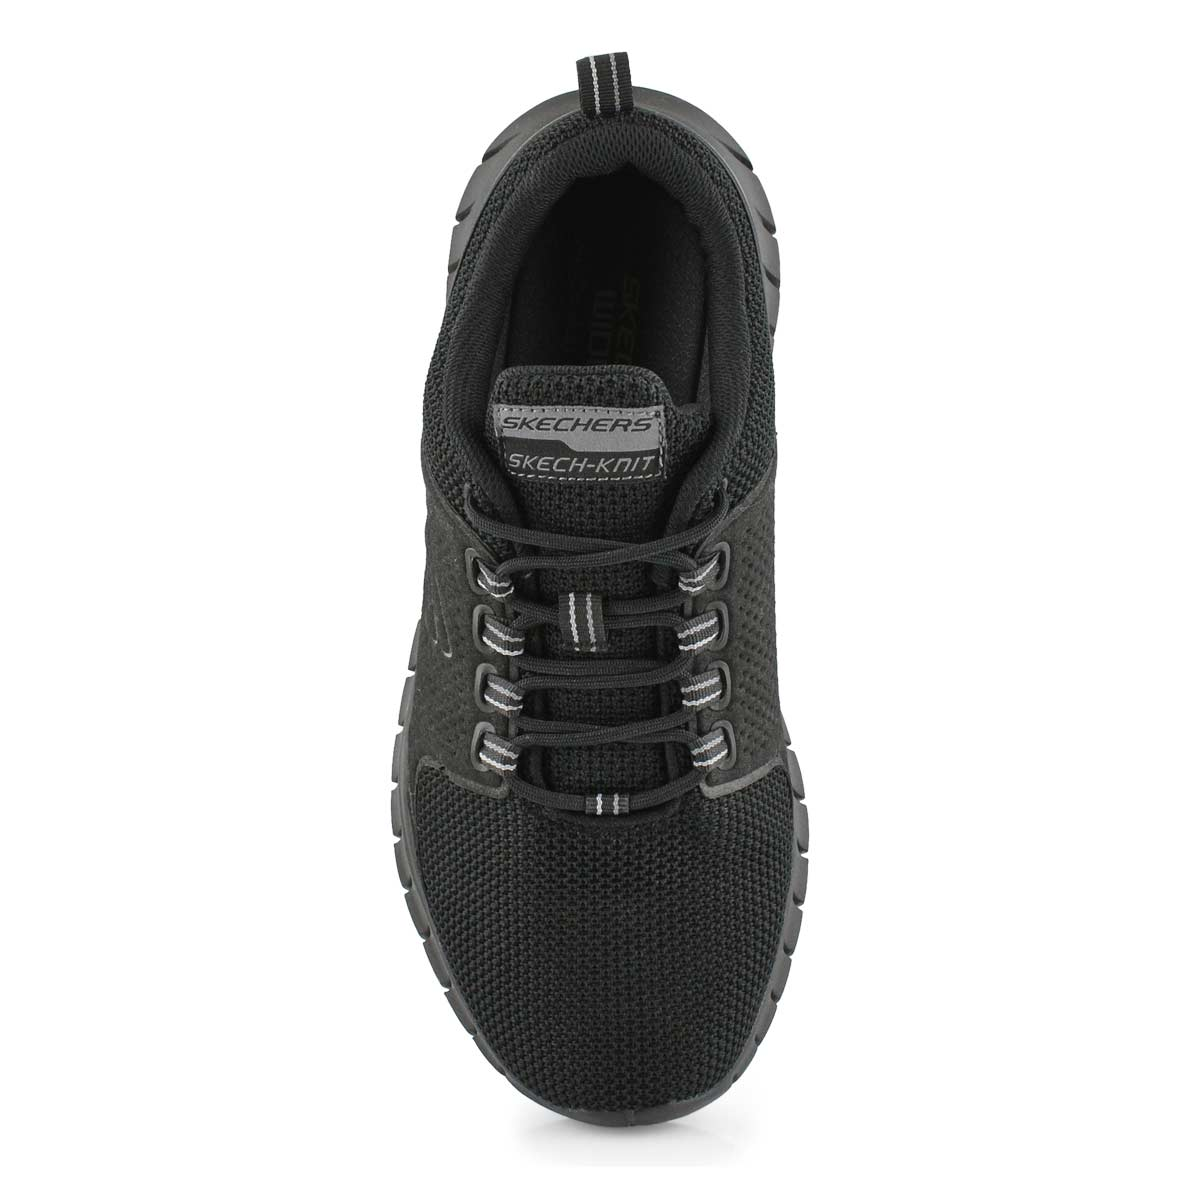 Mns Overhaul Primba blk snkr- Wide